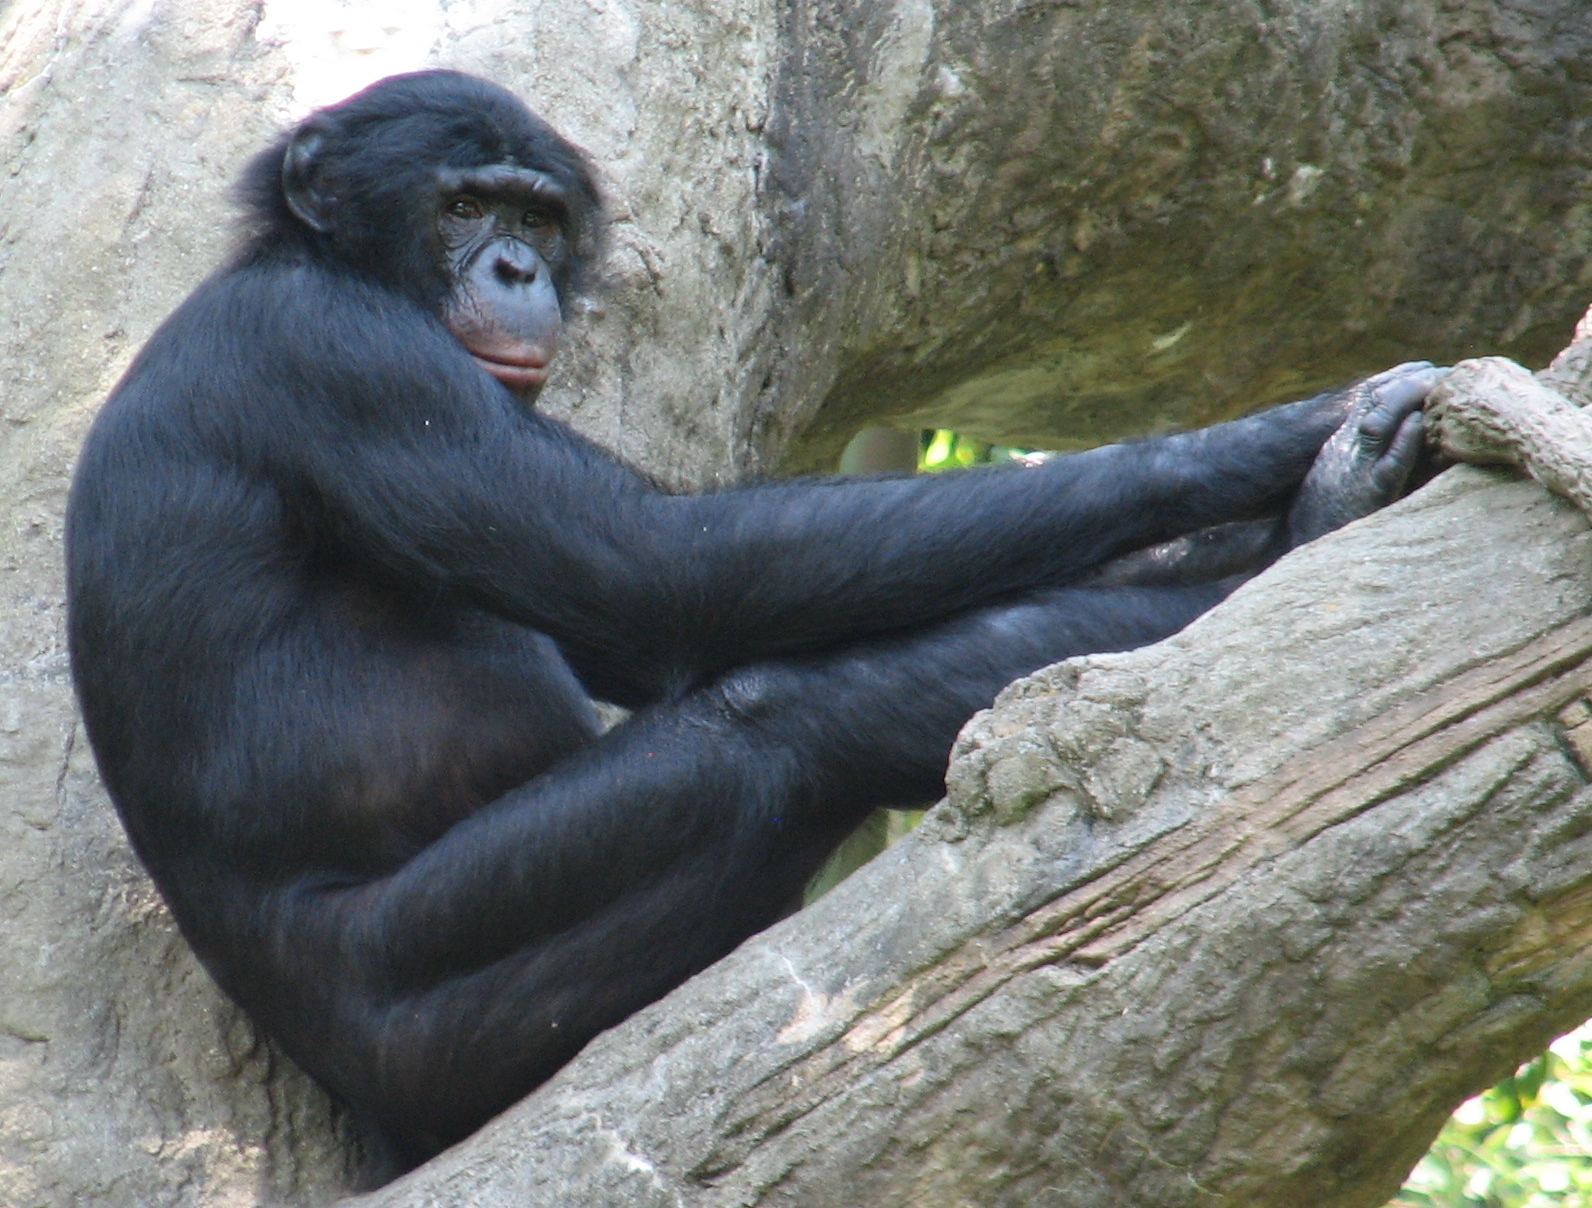 https://upload.wikimedia.org/wikipedia/commons/8/87/Bonobo_cincyzoo.jpg